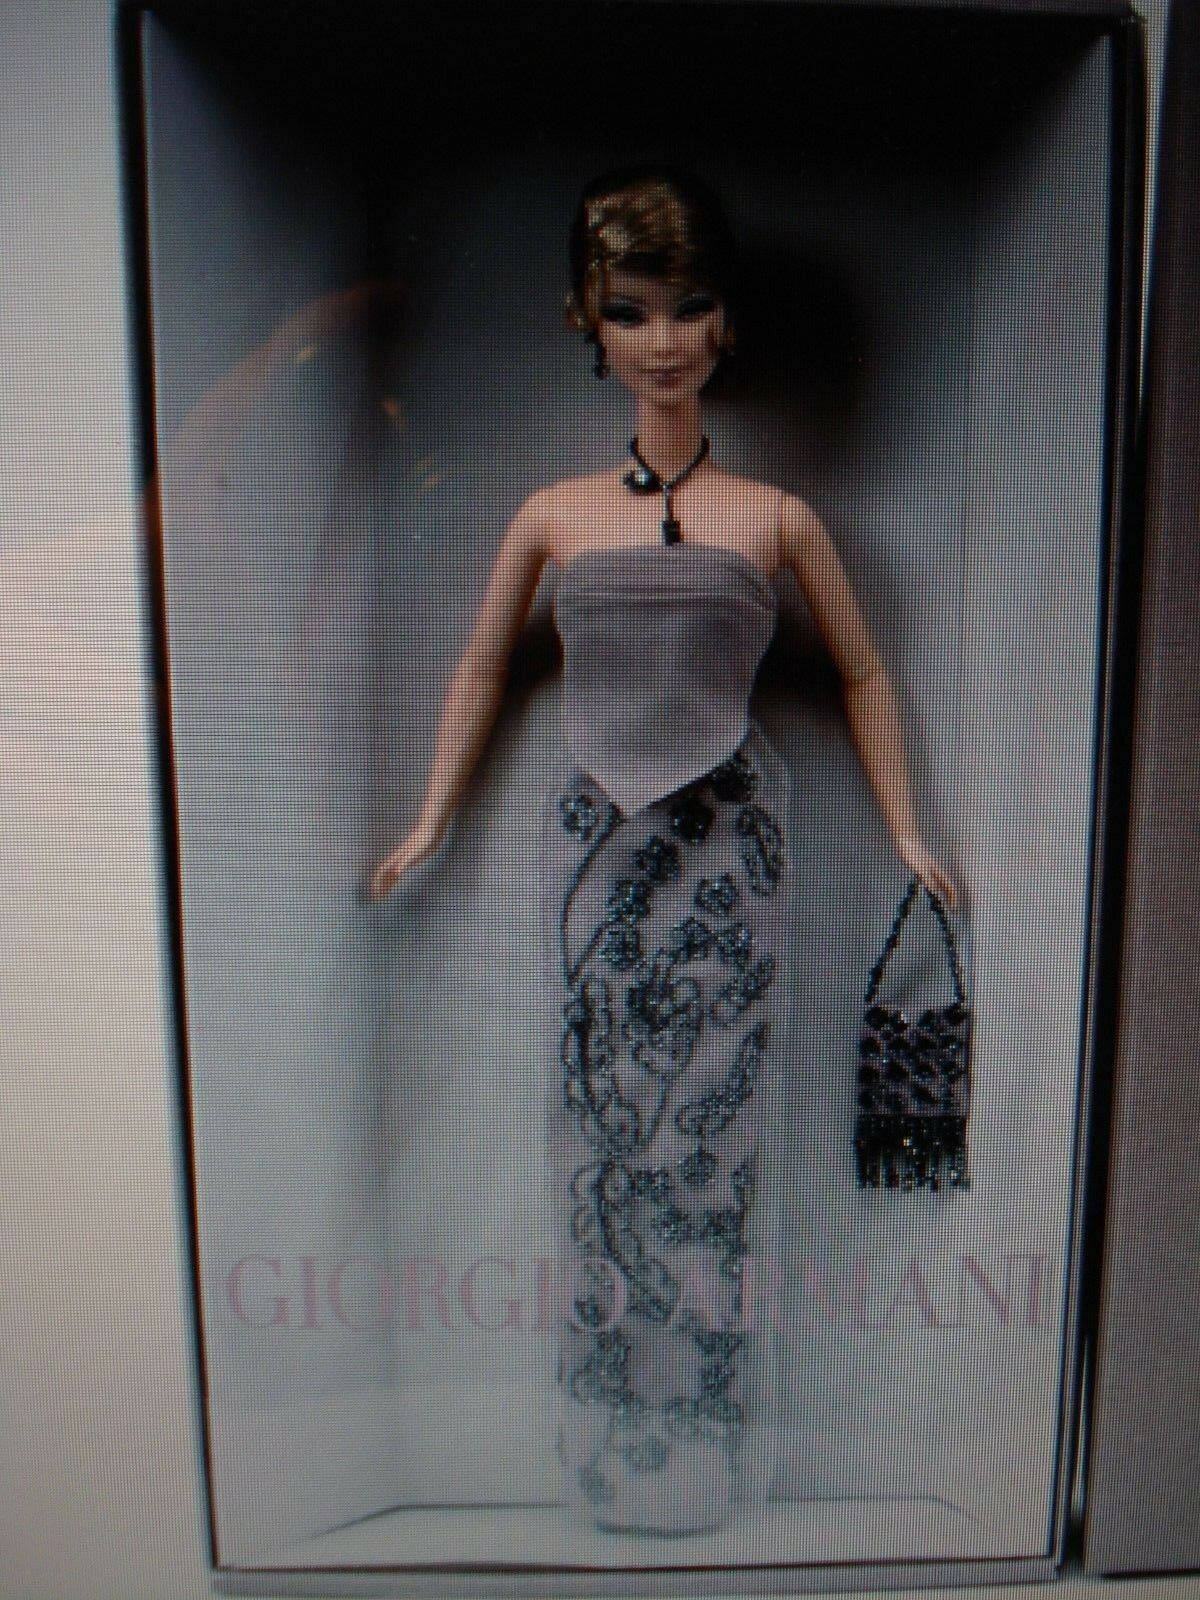 Beautiful designer doll - 2003 Limited Edition Giorgio Armani Barbie Doll